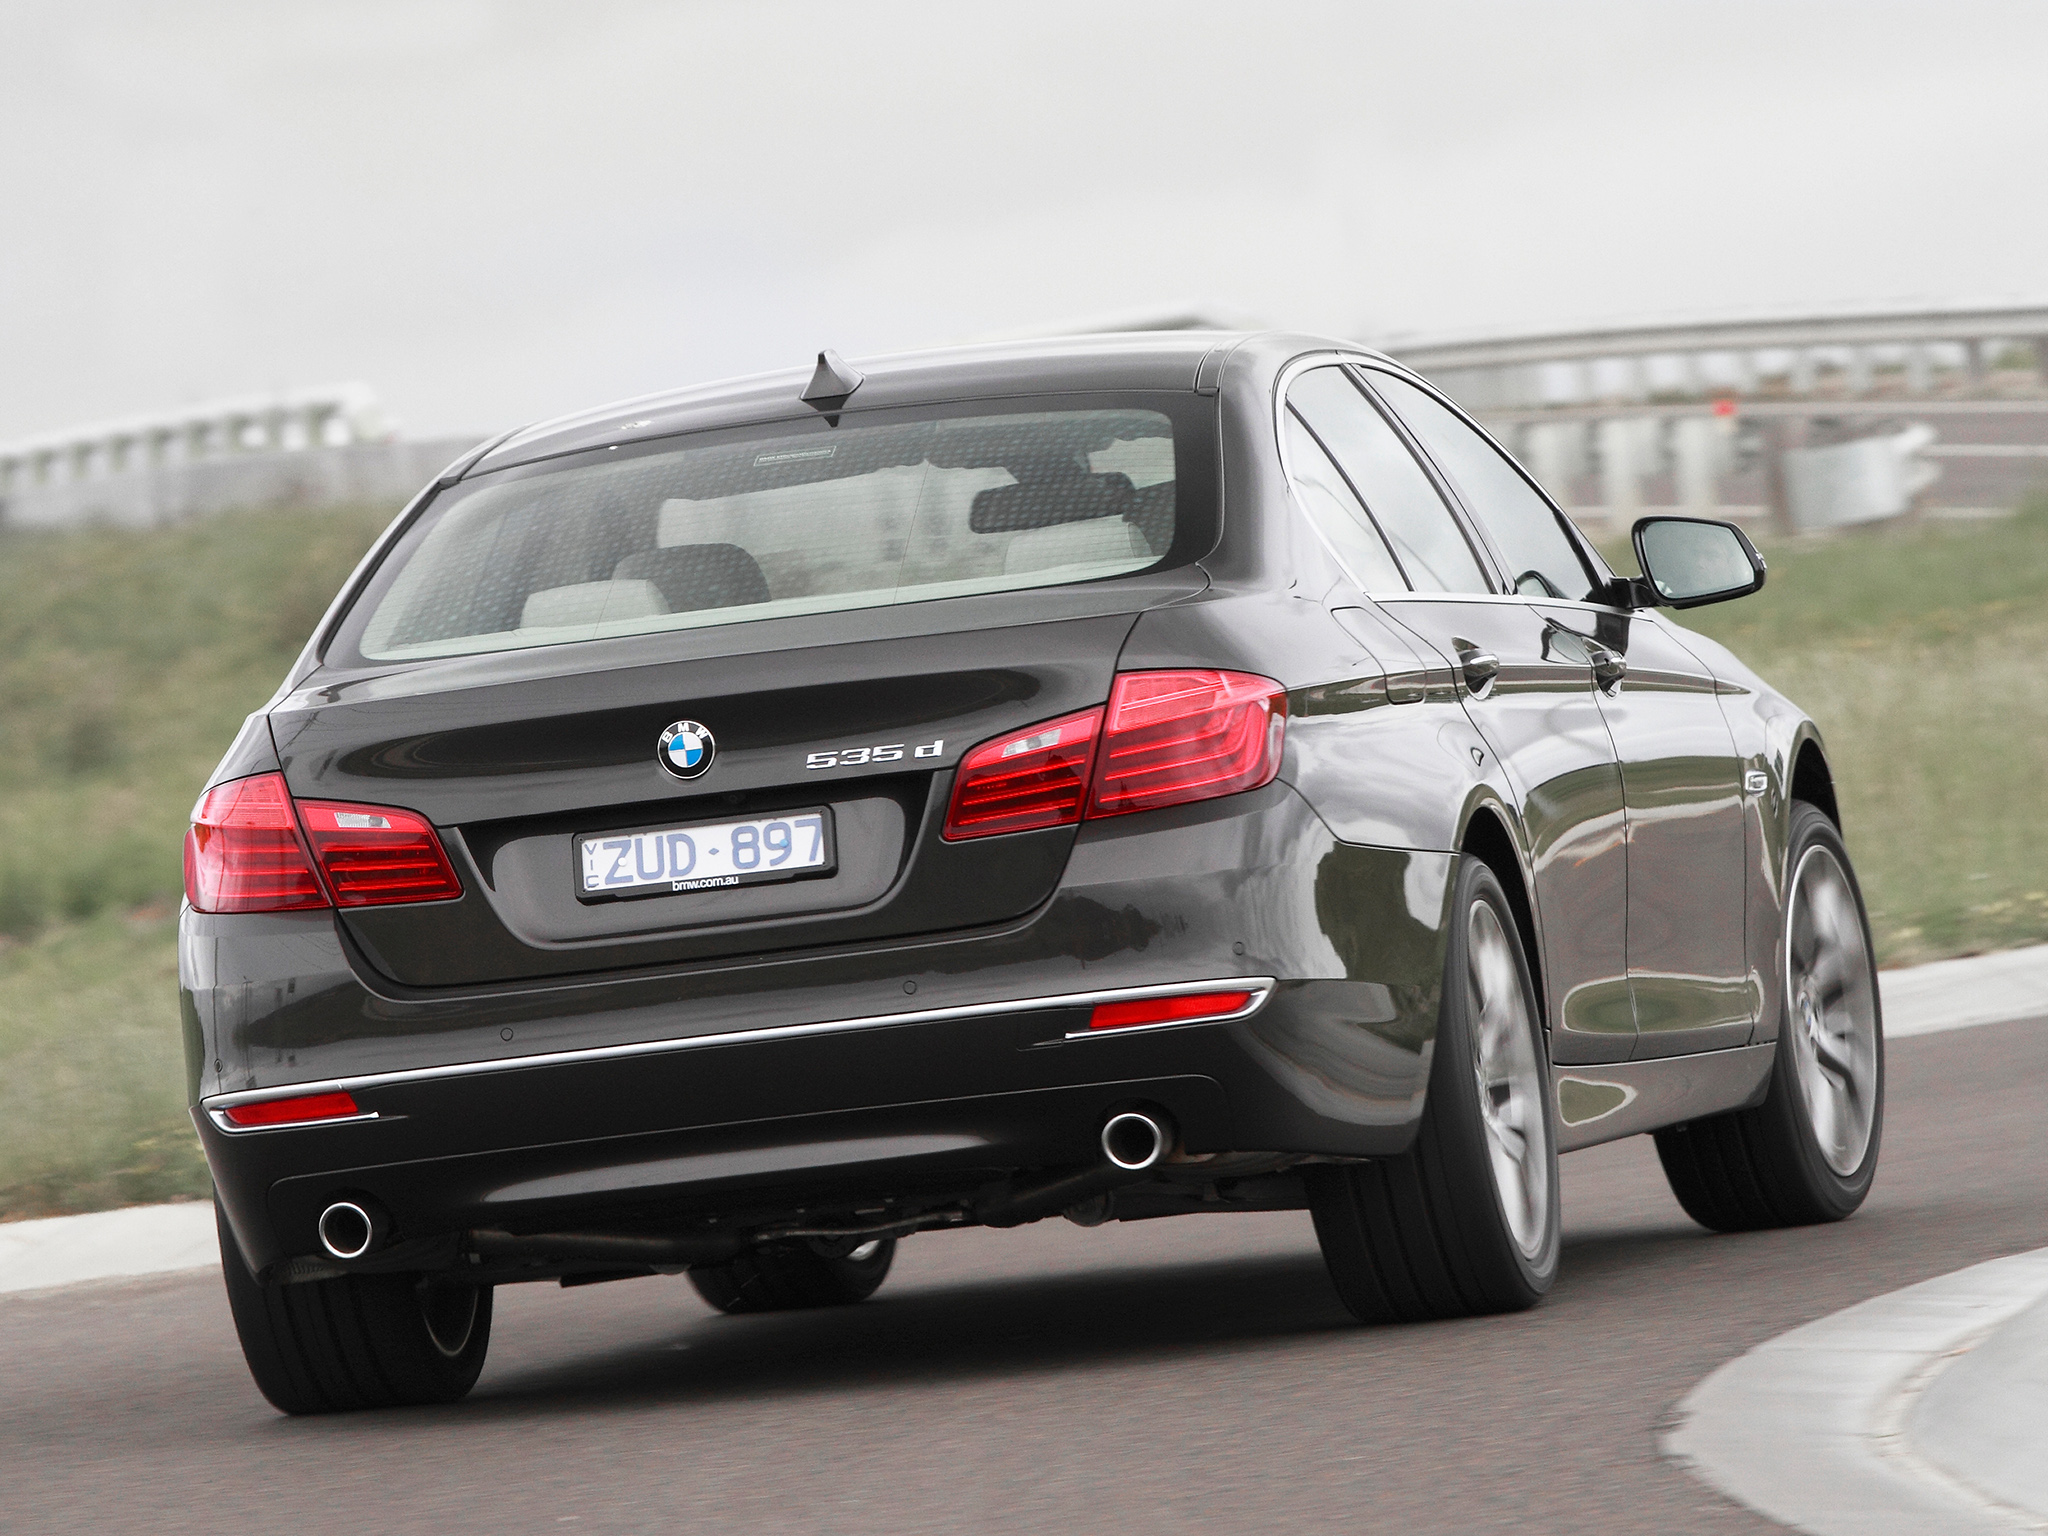 BMW 5 series 535d 2013 photo - 6